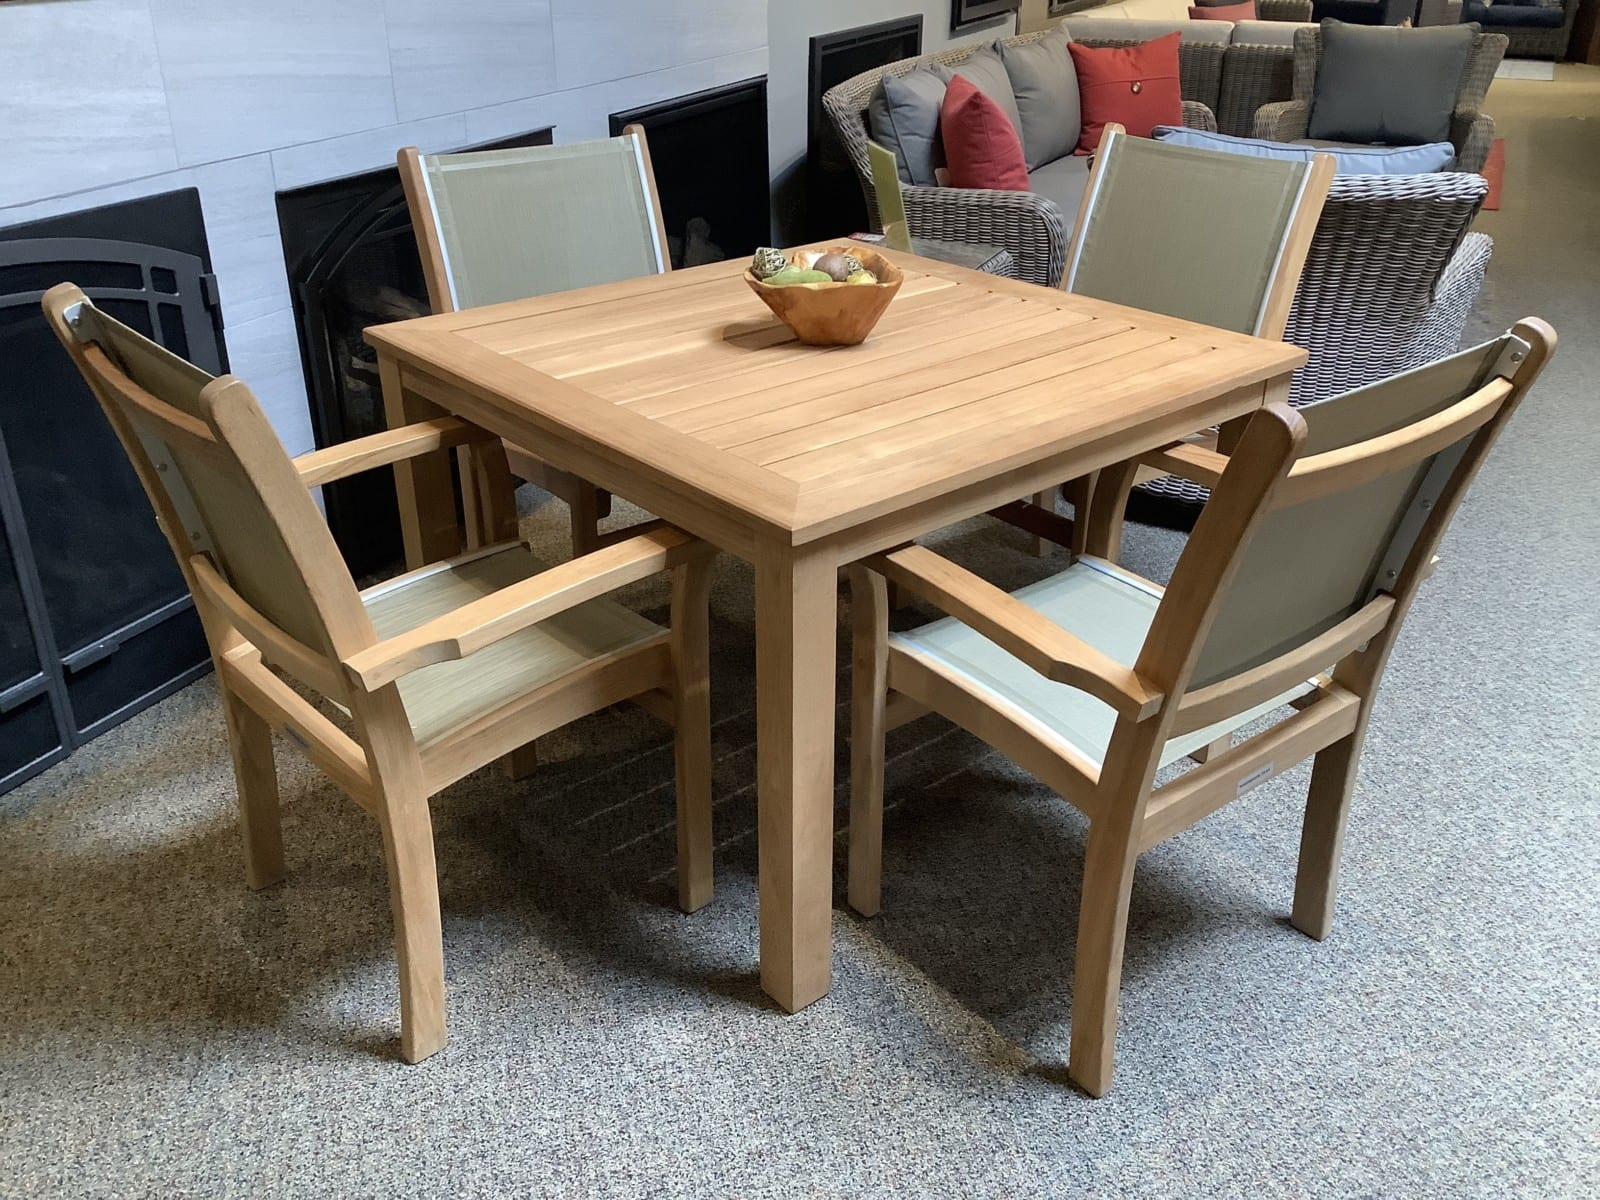 WB-Teak-4222-sq-teak-table-w-topaz-chairs